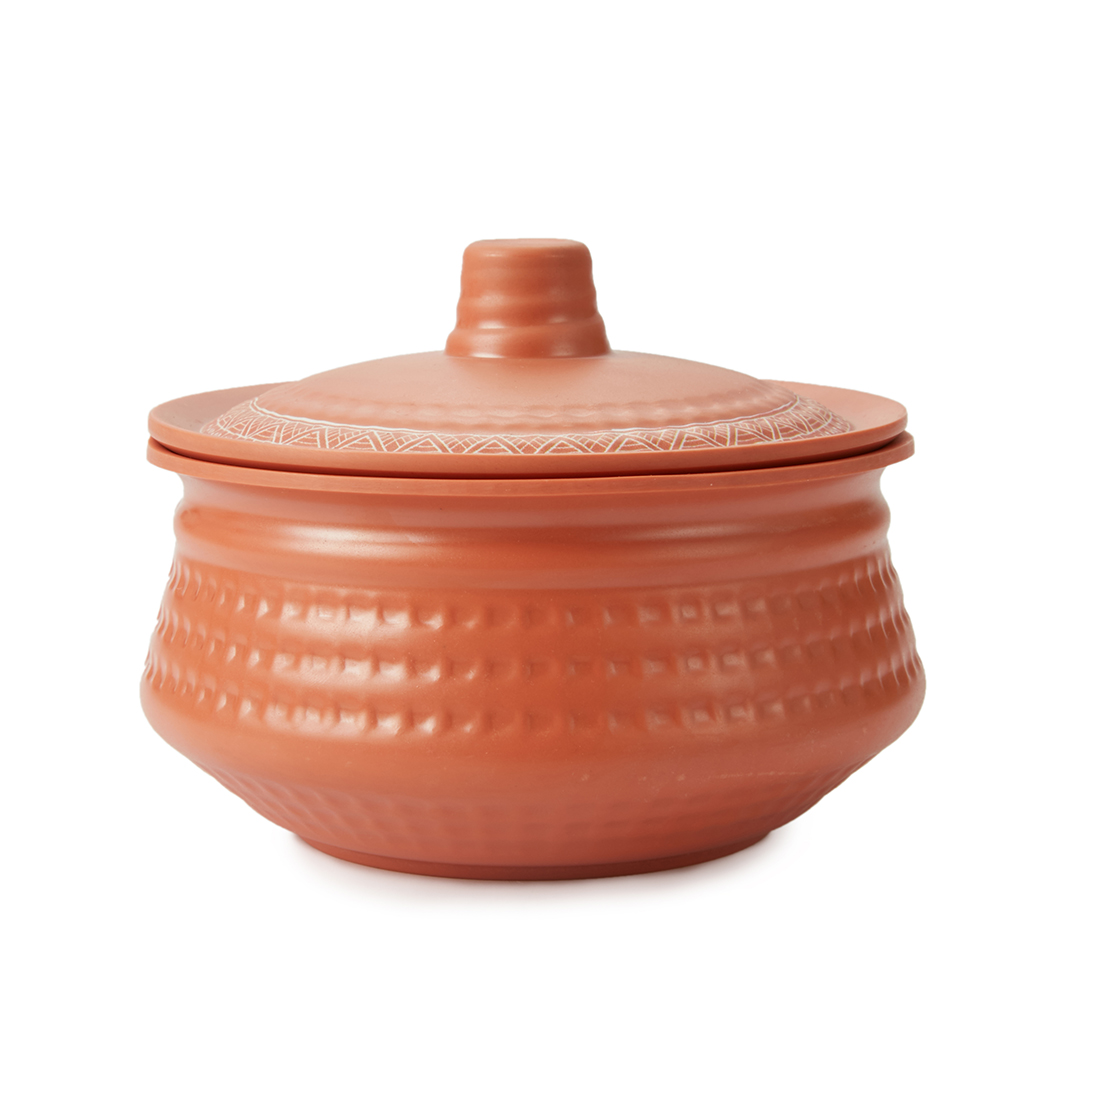 Terracotta Round Handi Small With Lid Bowls in Brown Colour by Living Essence